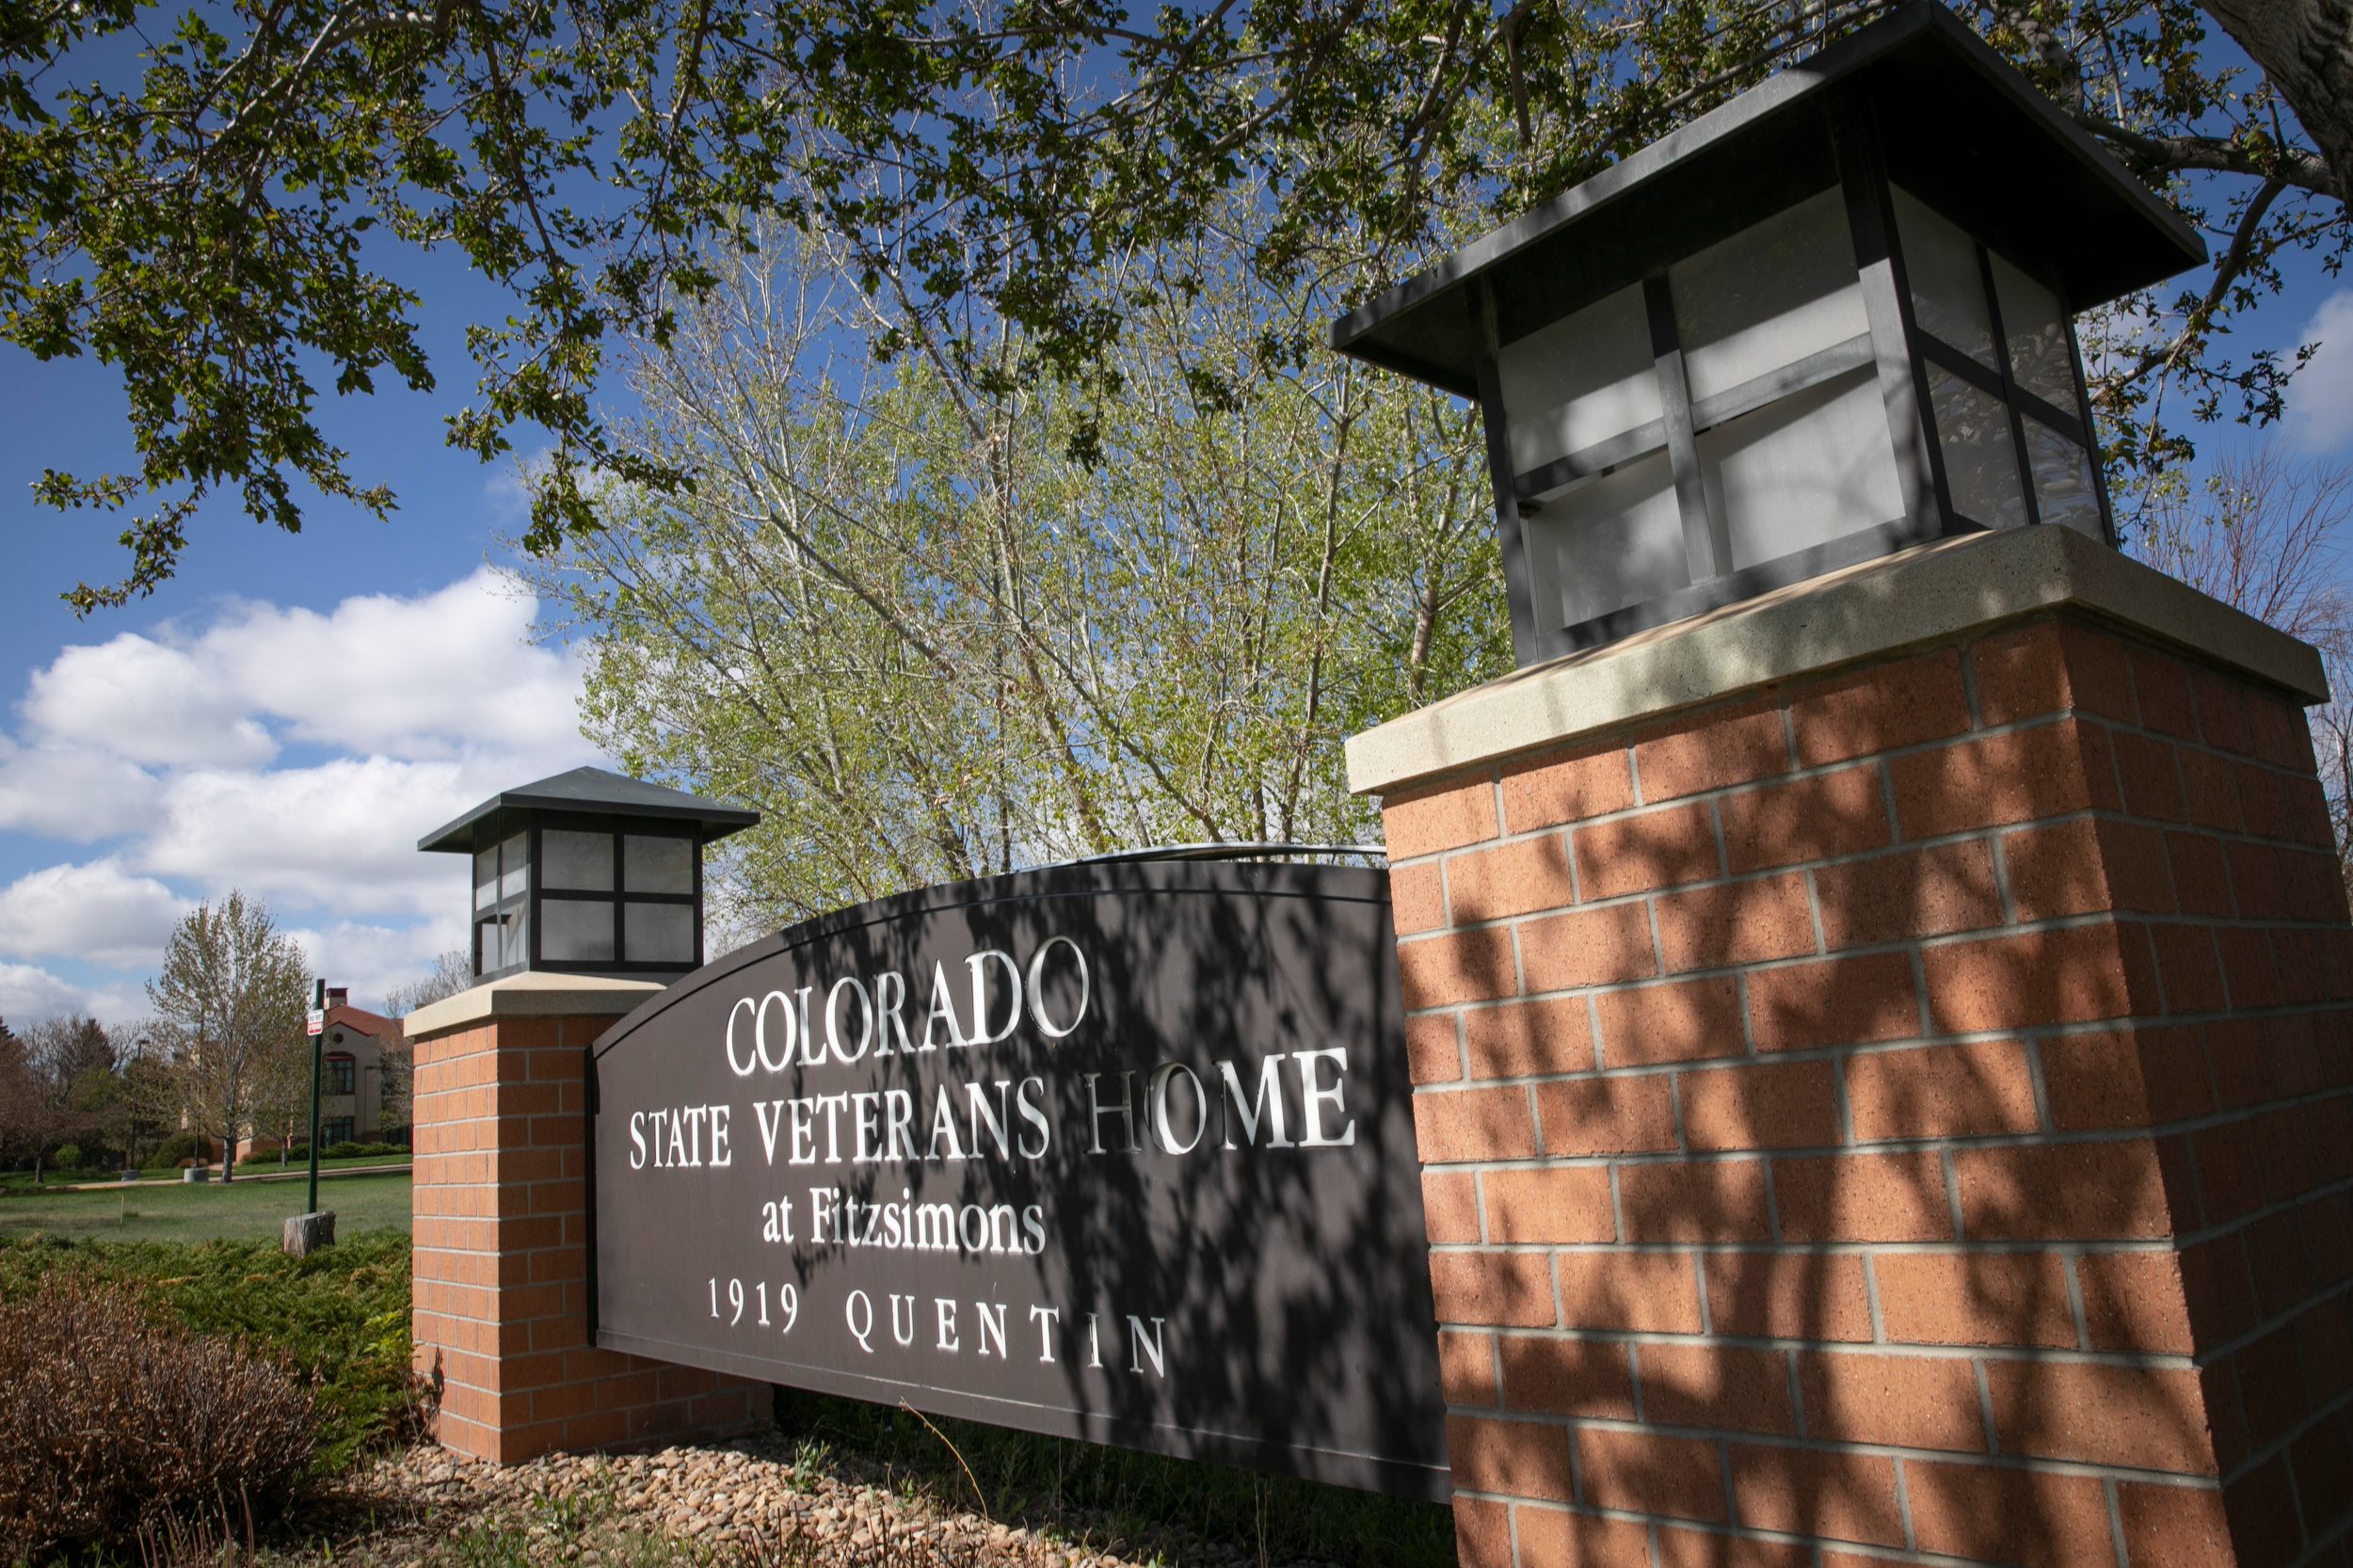 Colorado State Veterans Home at Fitzsimons in Aurora